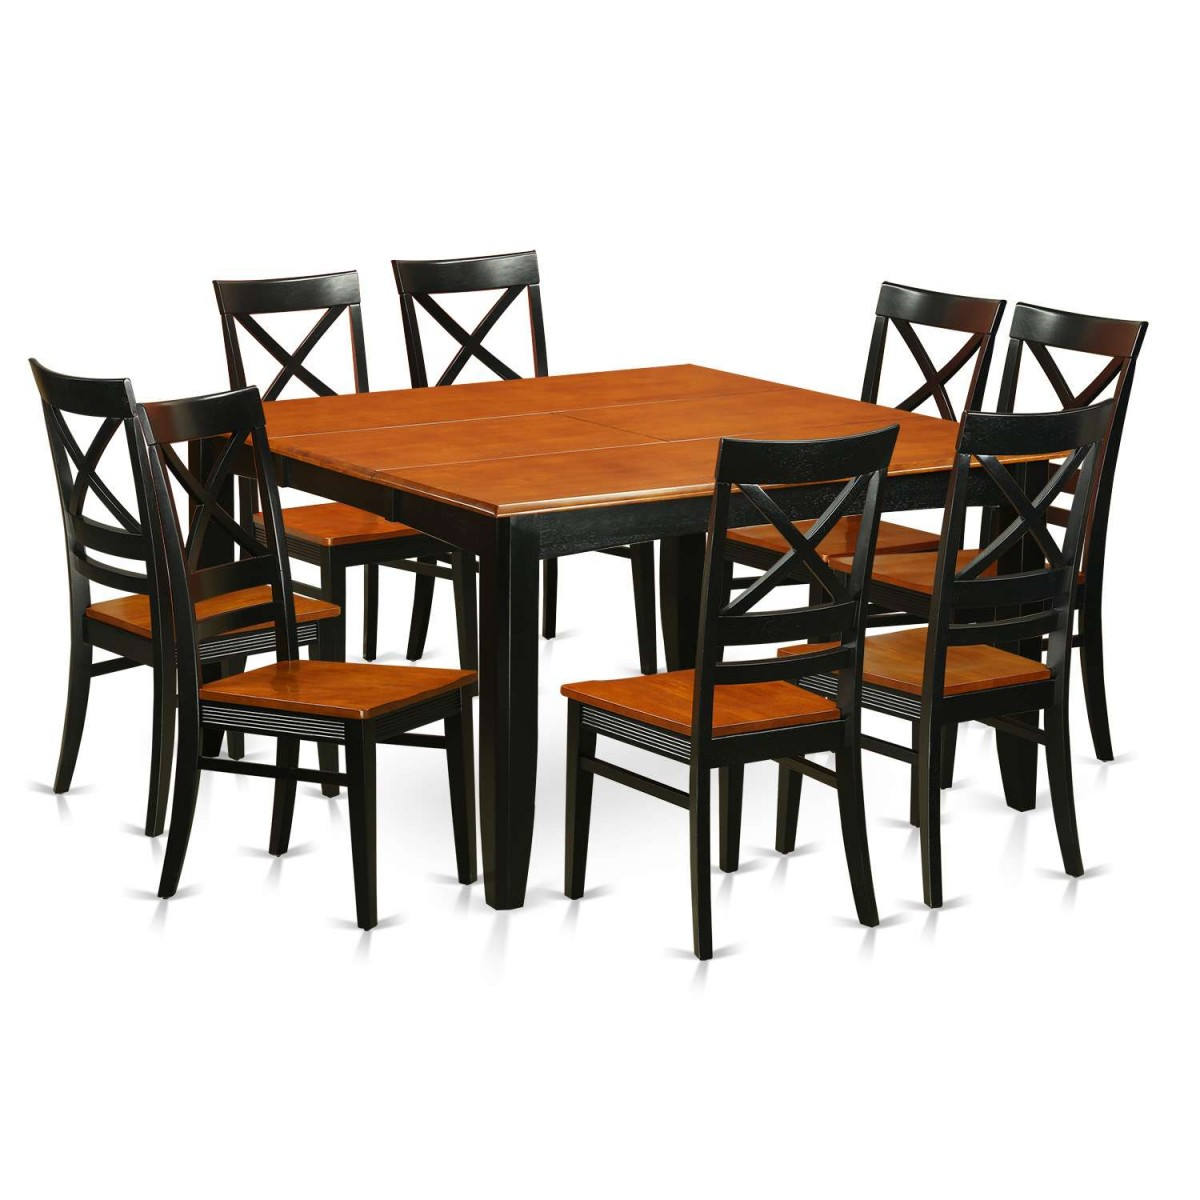 8 Piece Dining Room Sets: East West Furniture Parfait 9 Piece Dining Room Set